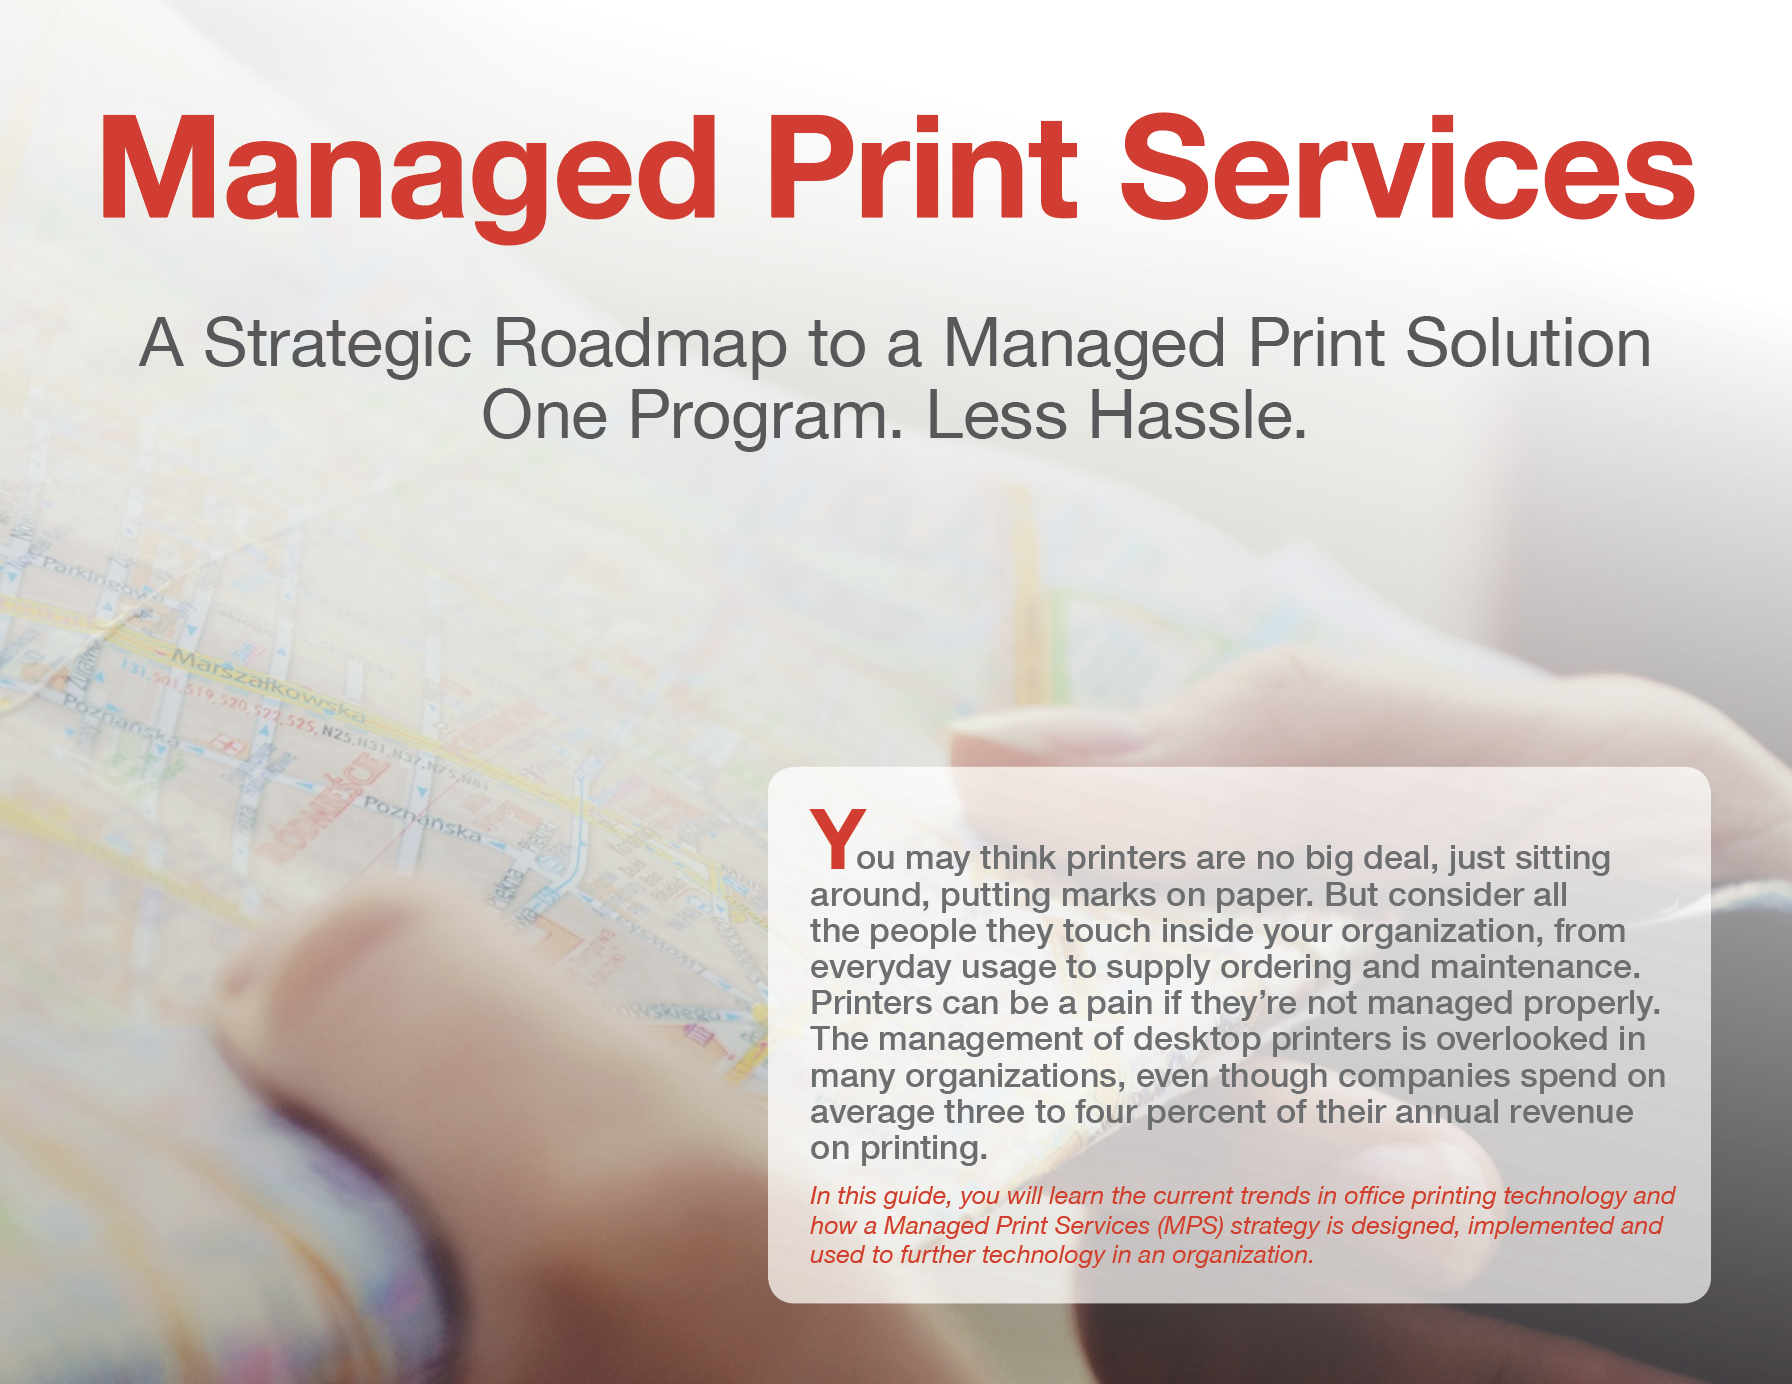 Managed Print Services A Strategic Roadmap to an MPS Solution Loffler Companies